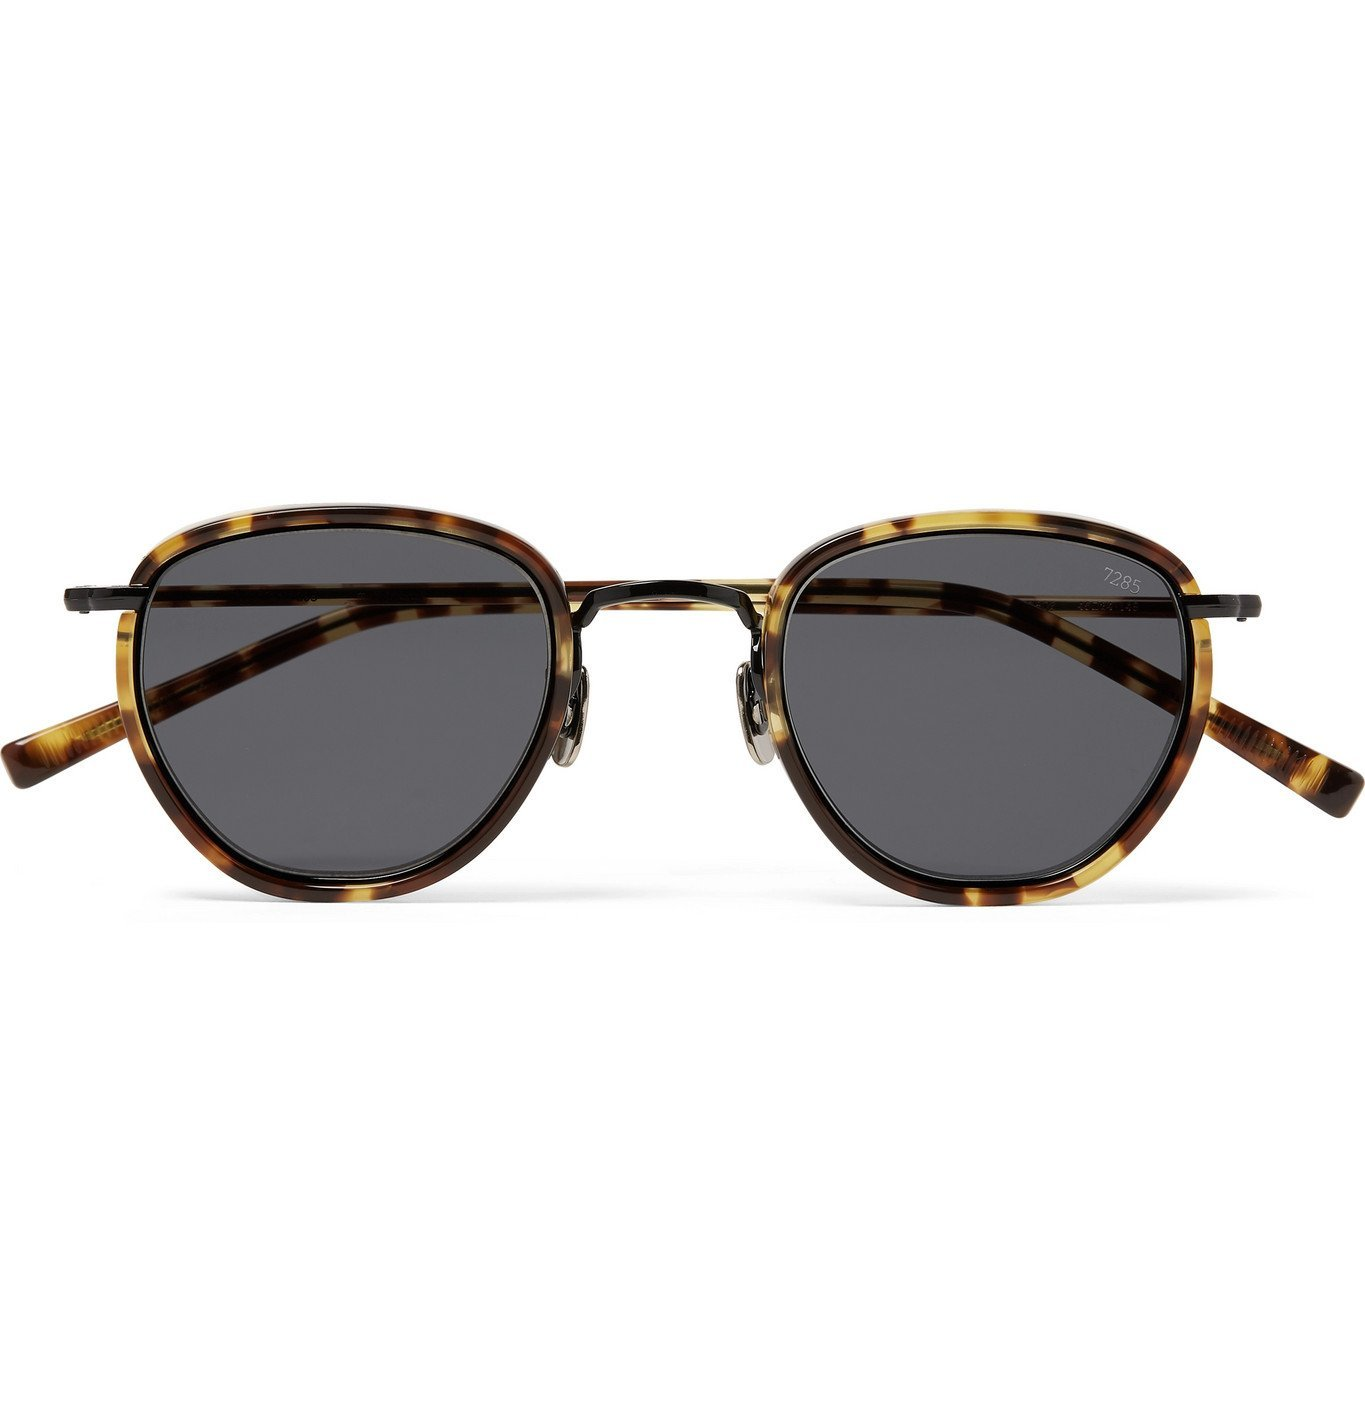 Photo: Eyevan 7285 - D-Frame Acetate and Gold-Tone Sunglasses - Brown